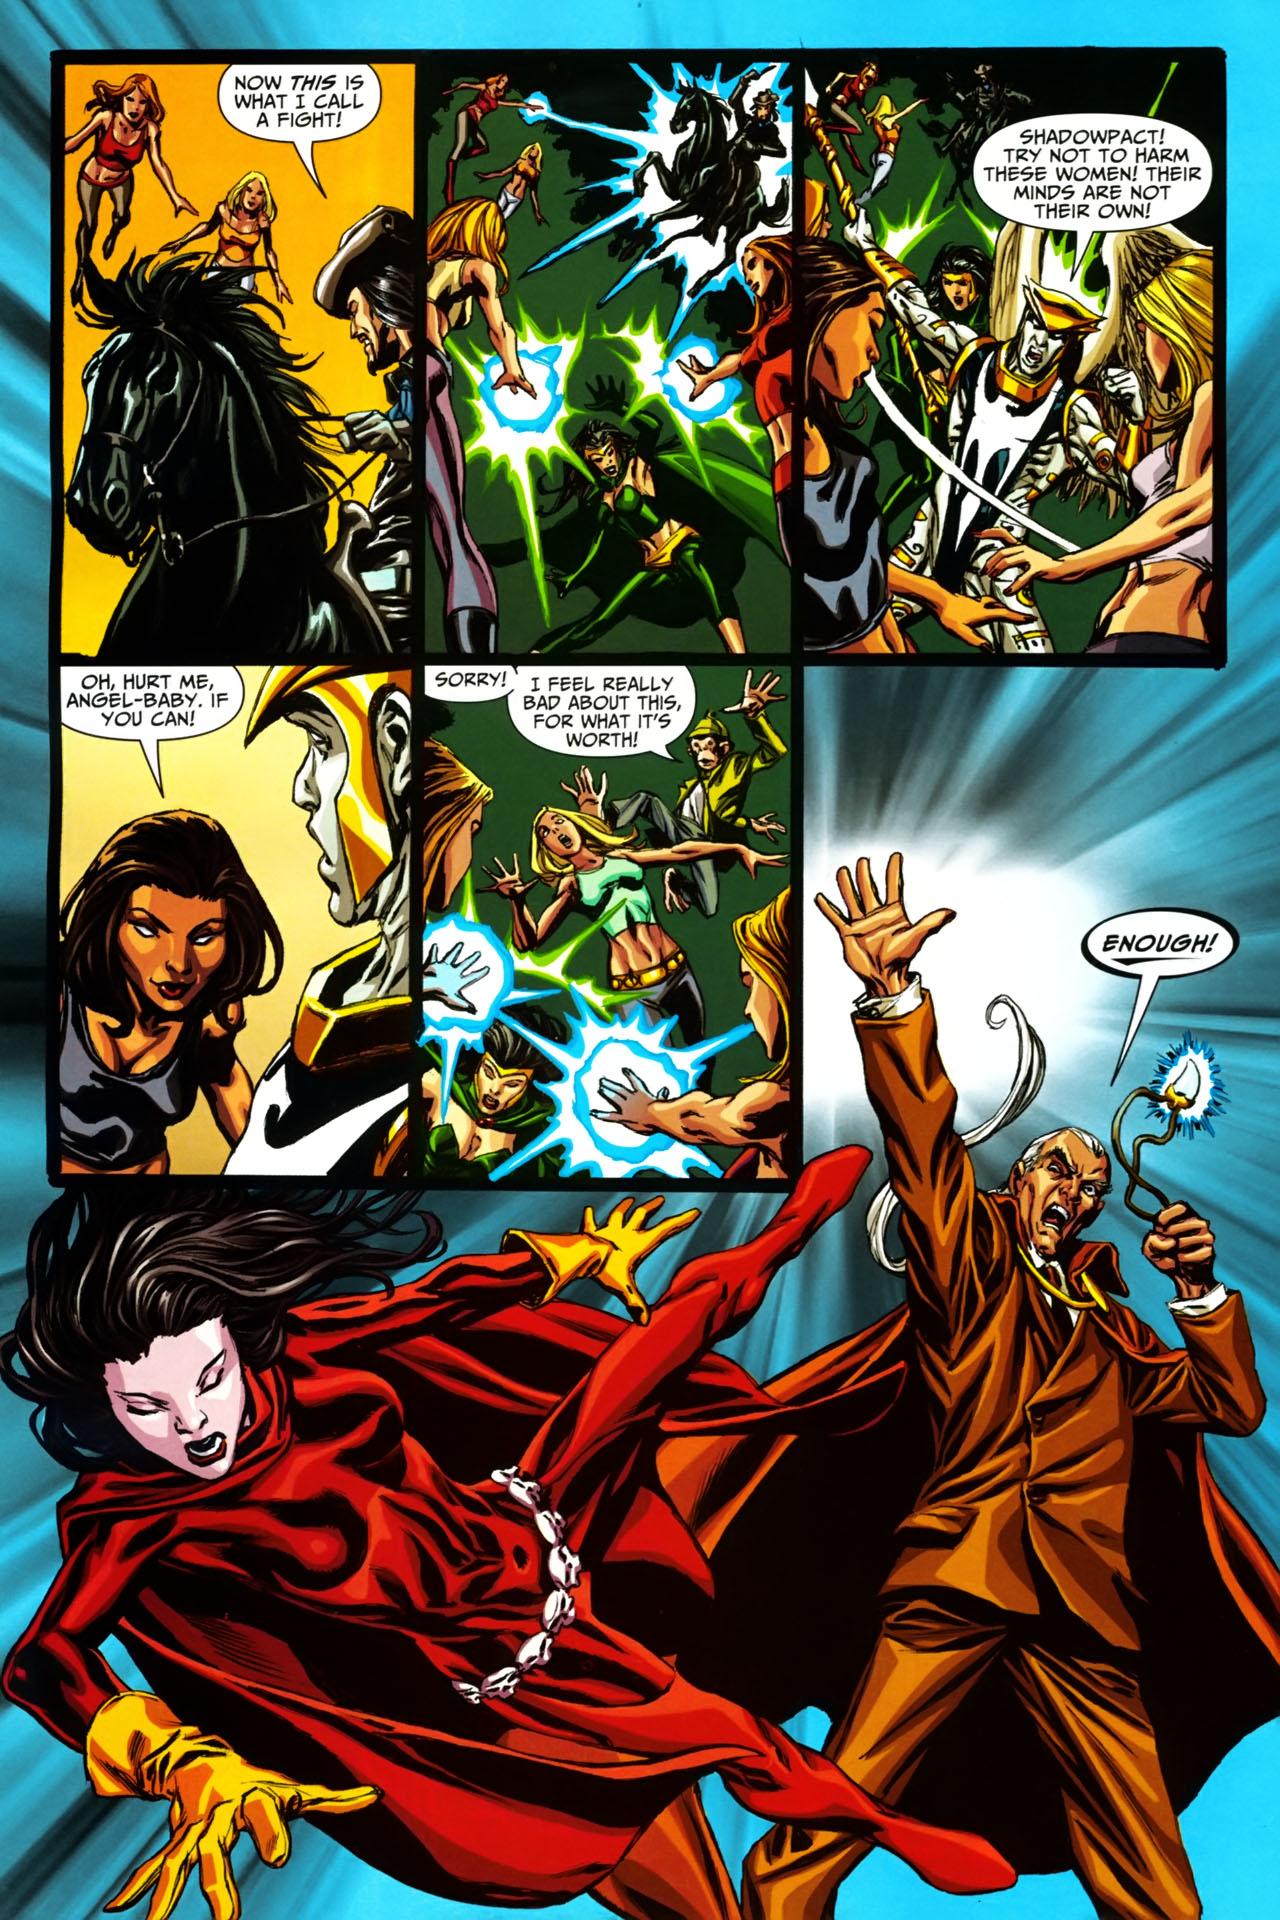 Read online Shadowpact comic -  Issue #19 - 18